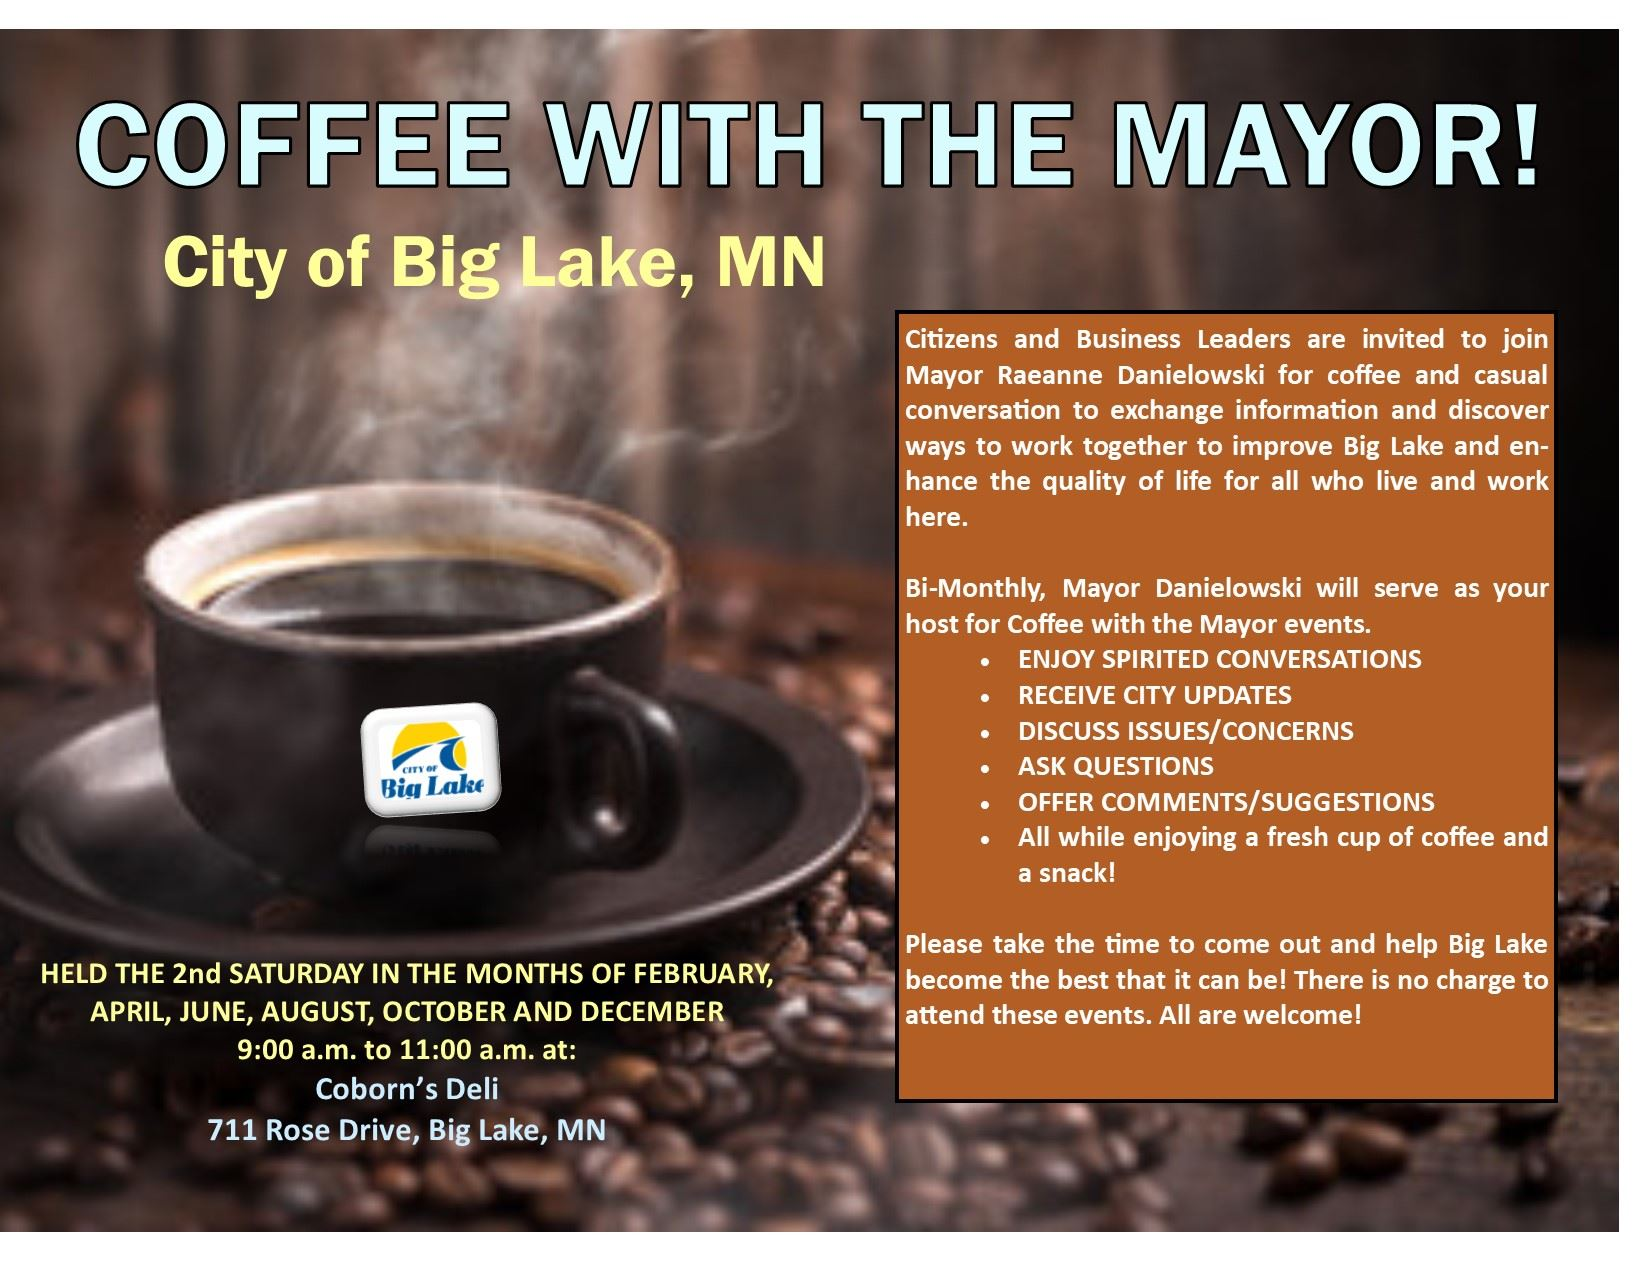 Coffee with the Mayor Flyer 2018